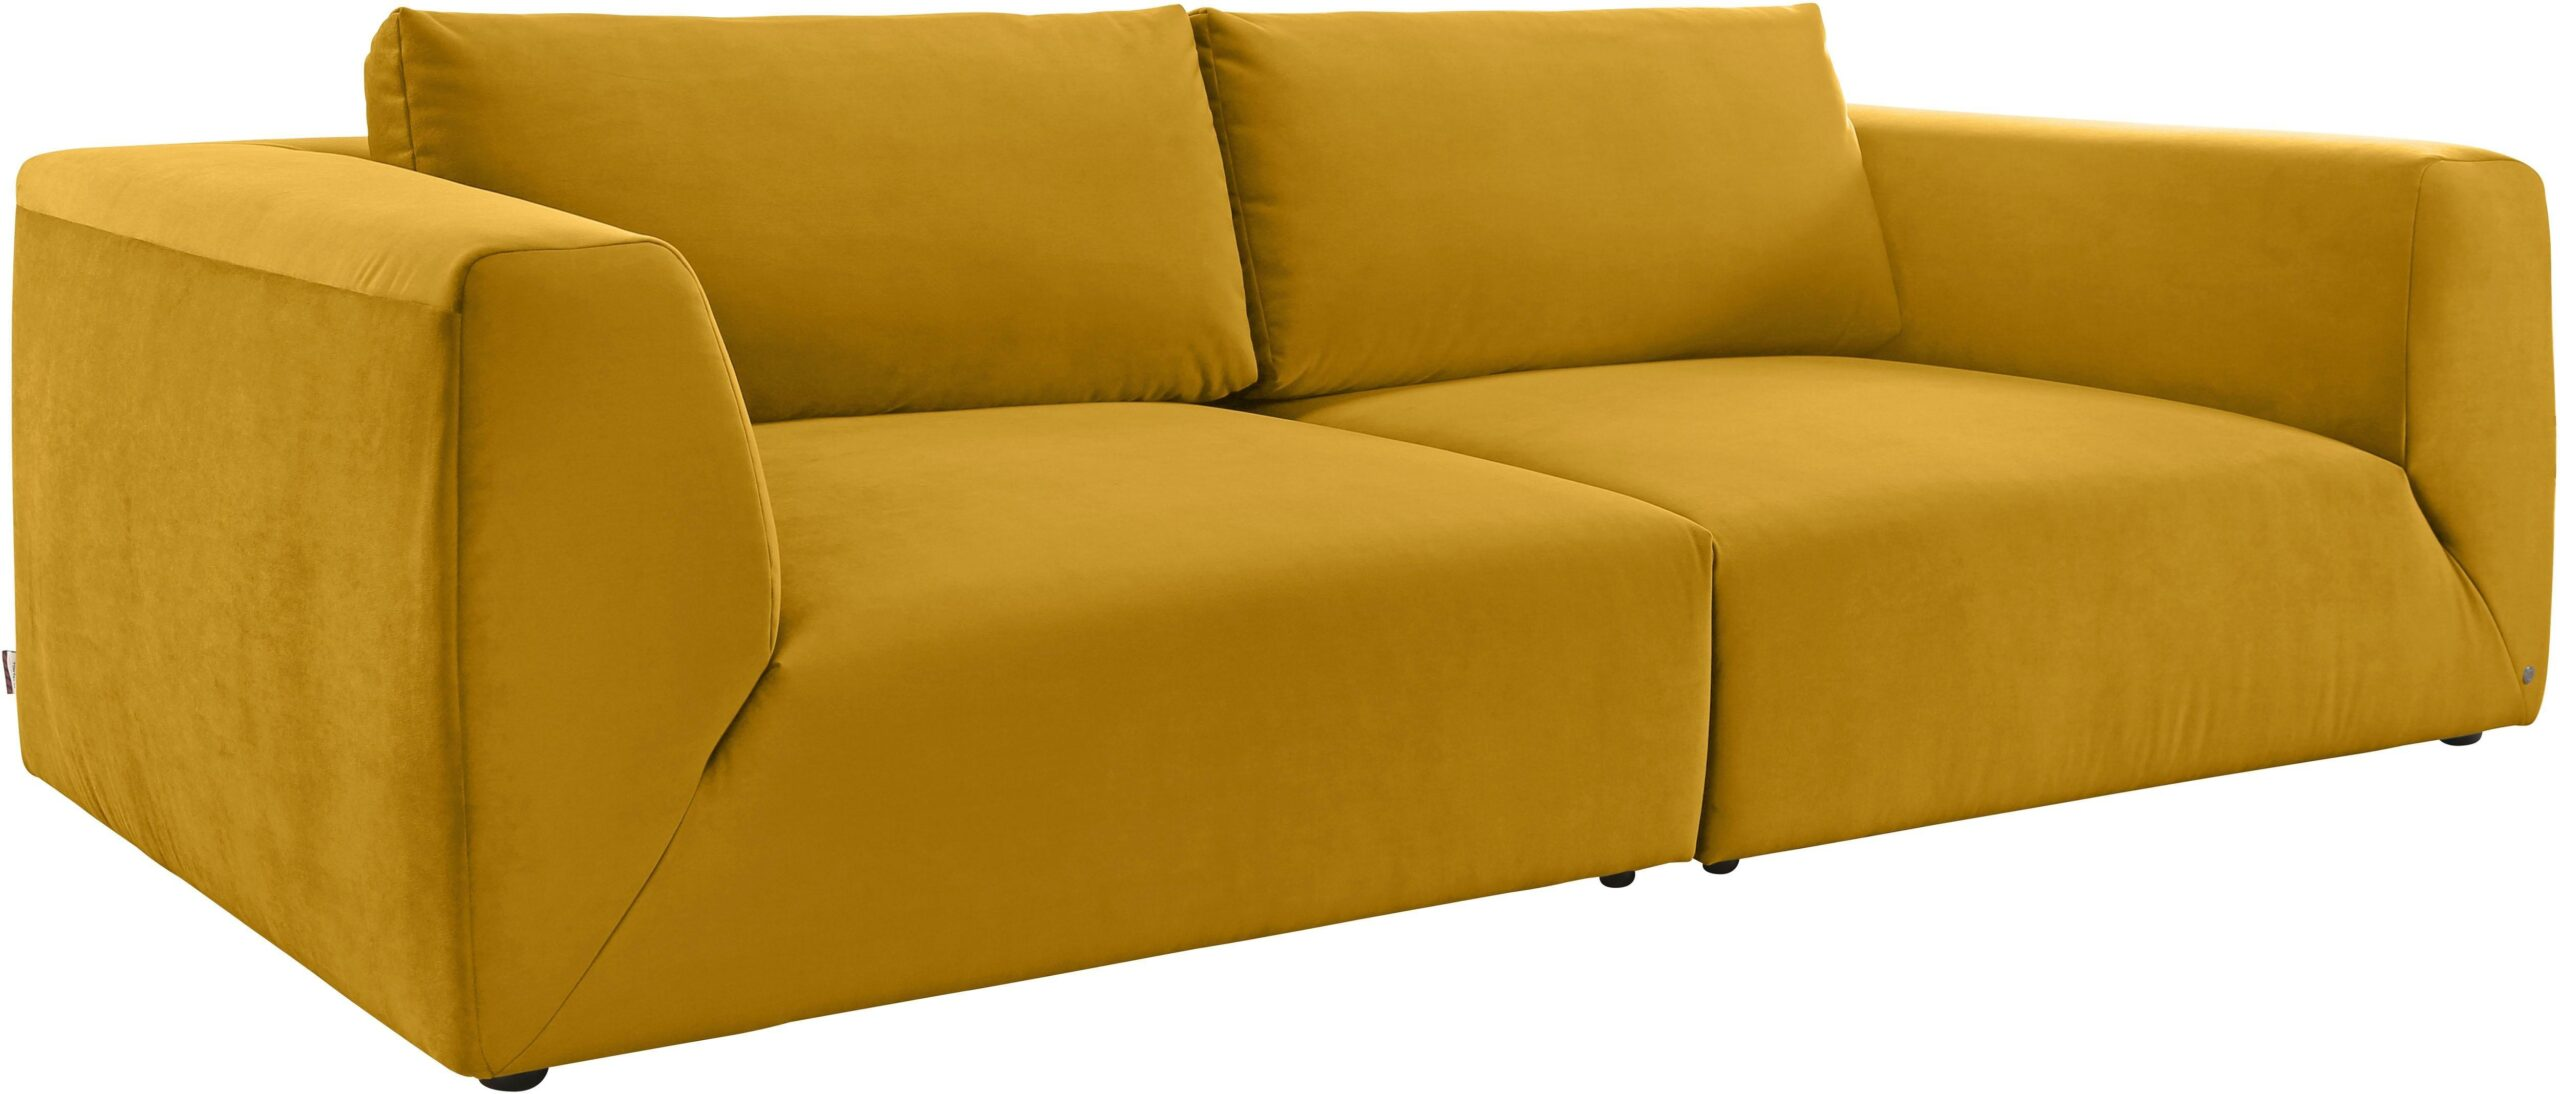 Full Size of Tom Tailor Sofa Heaven Style Colors Elements Xl Nordic Pure West Coast Chic Casual Couch Big Cube Round Bequem Auf Raten Kaufen Machalke Höffner Walter Knoll Sofa Tom Tailor Sofa